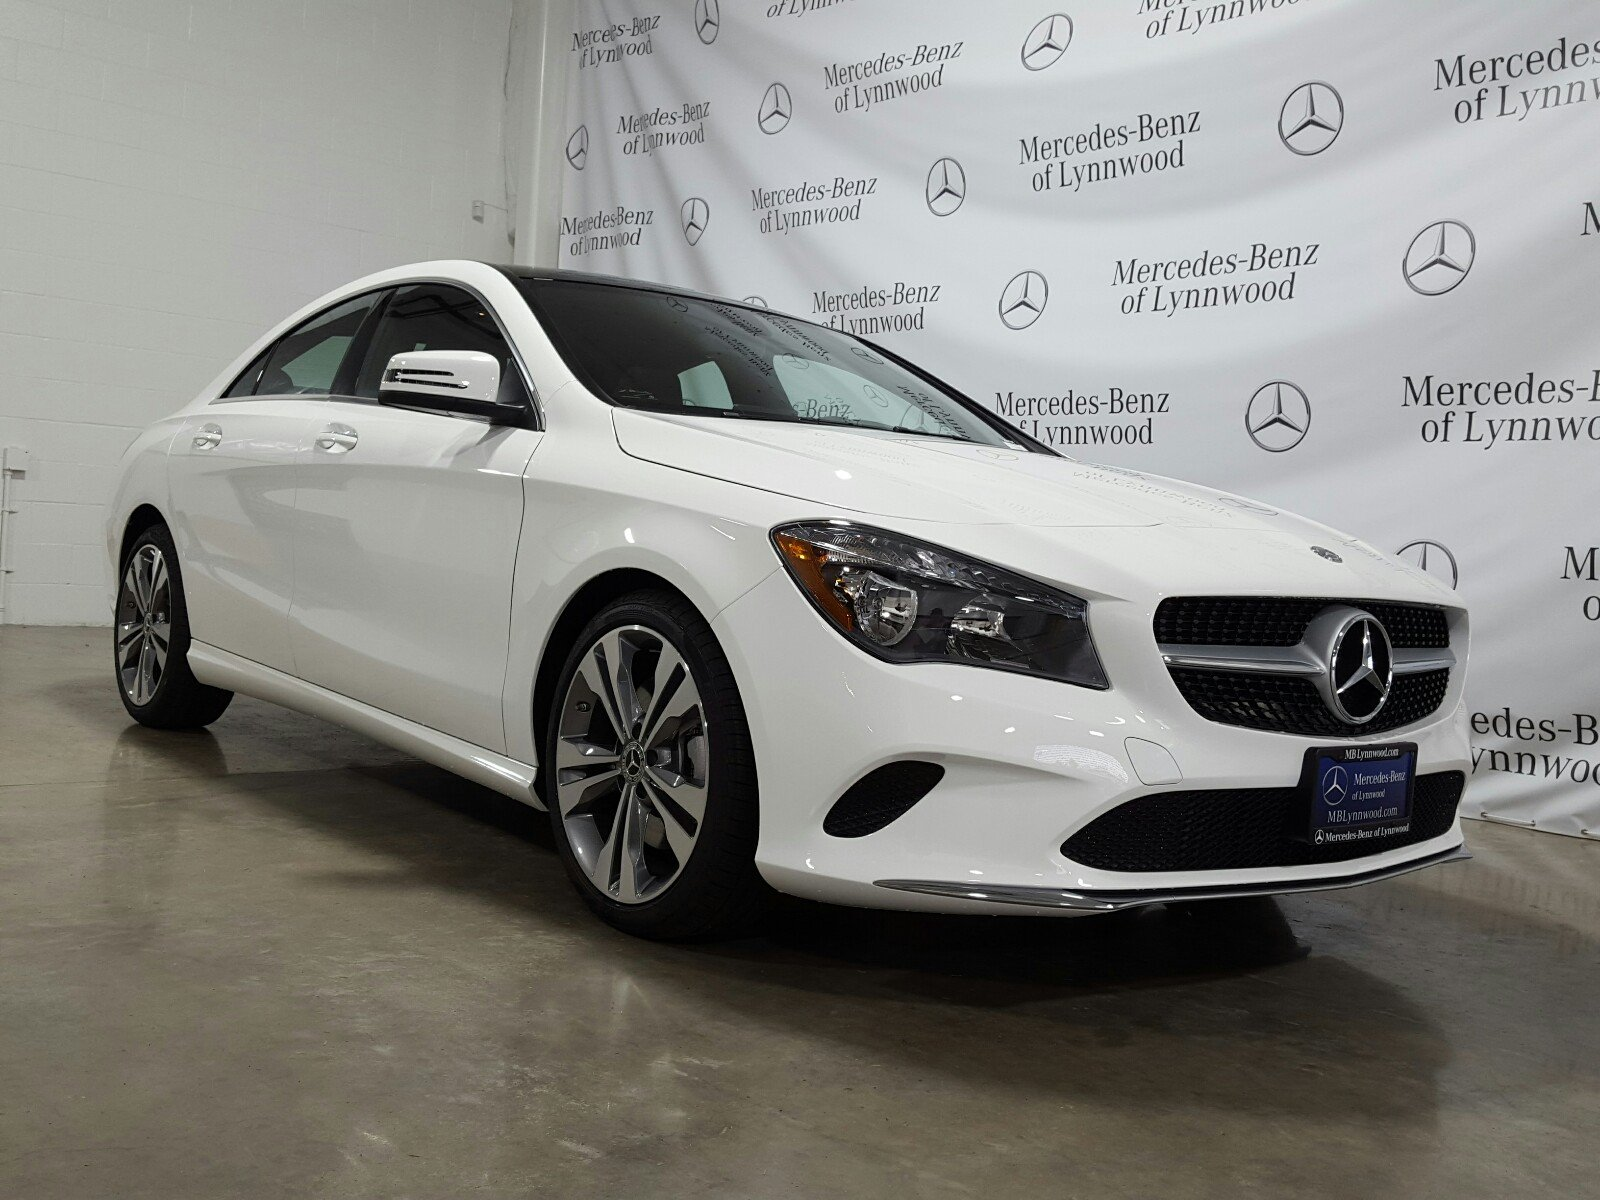 New 2019 Mercedes Benz CLA CLA 250 4MATIC Coupe Coupe in Lynnwood